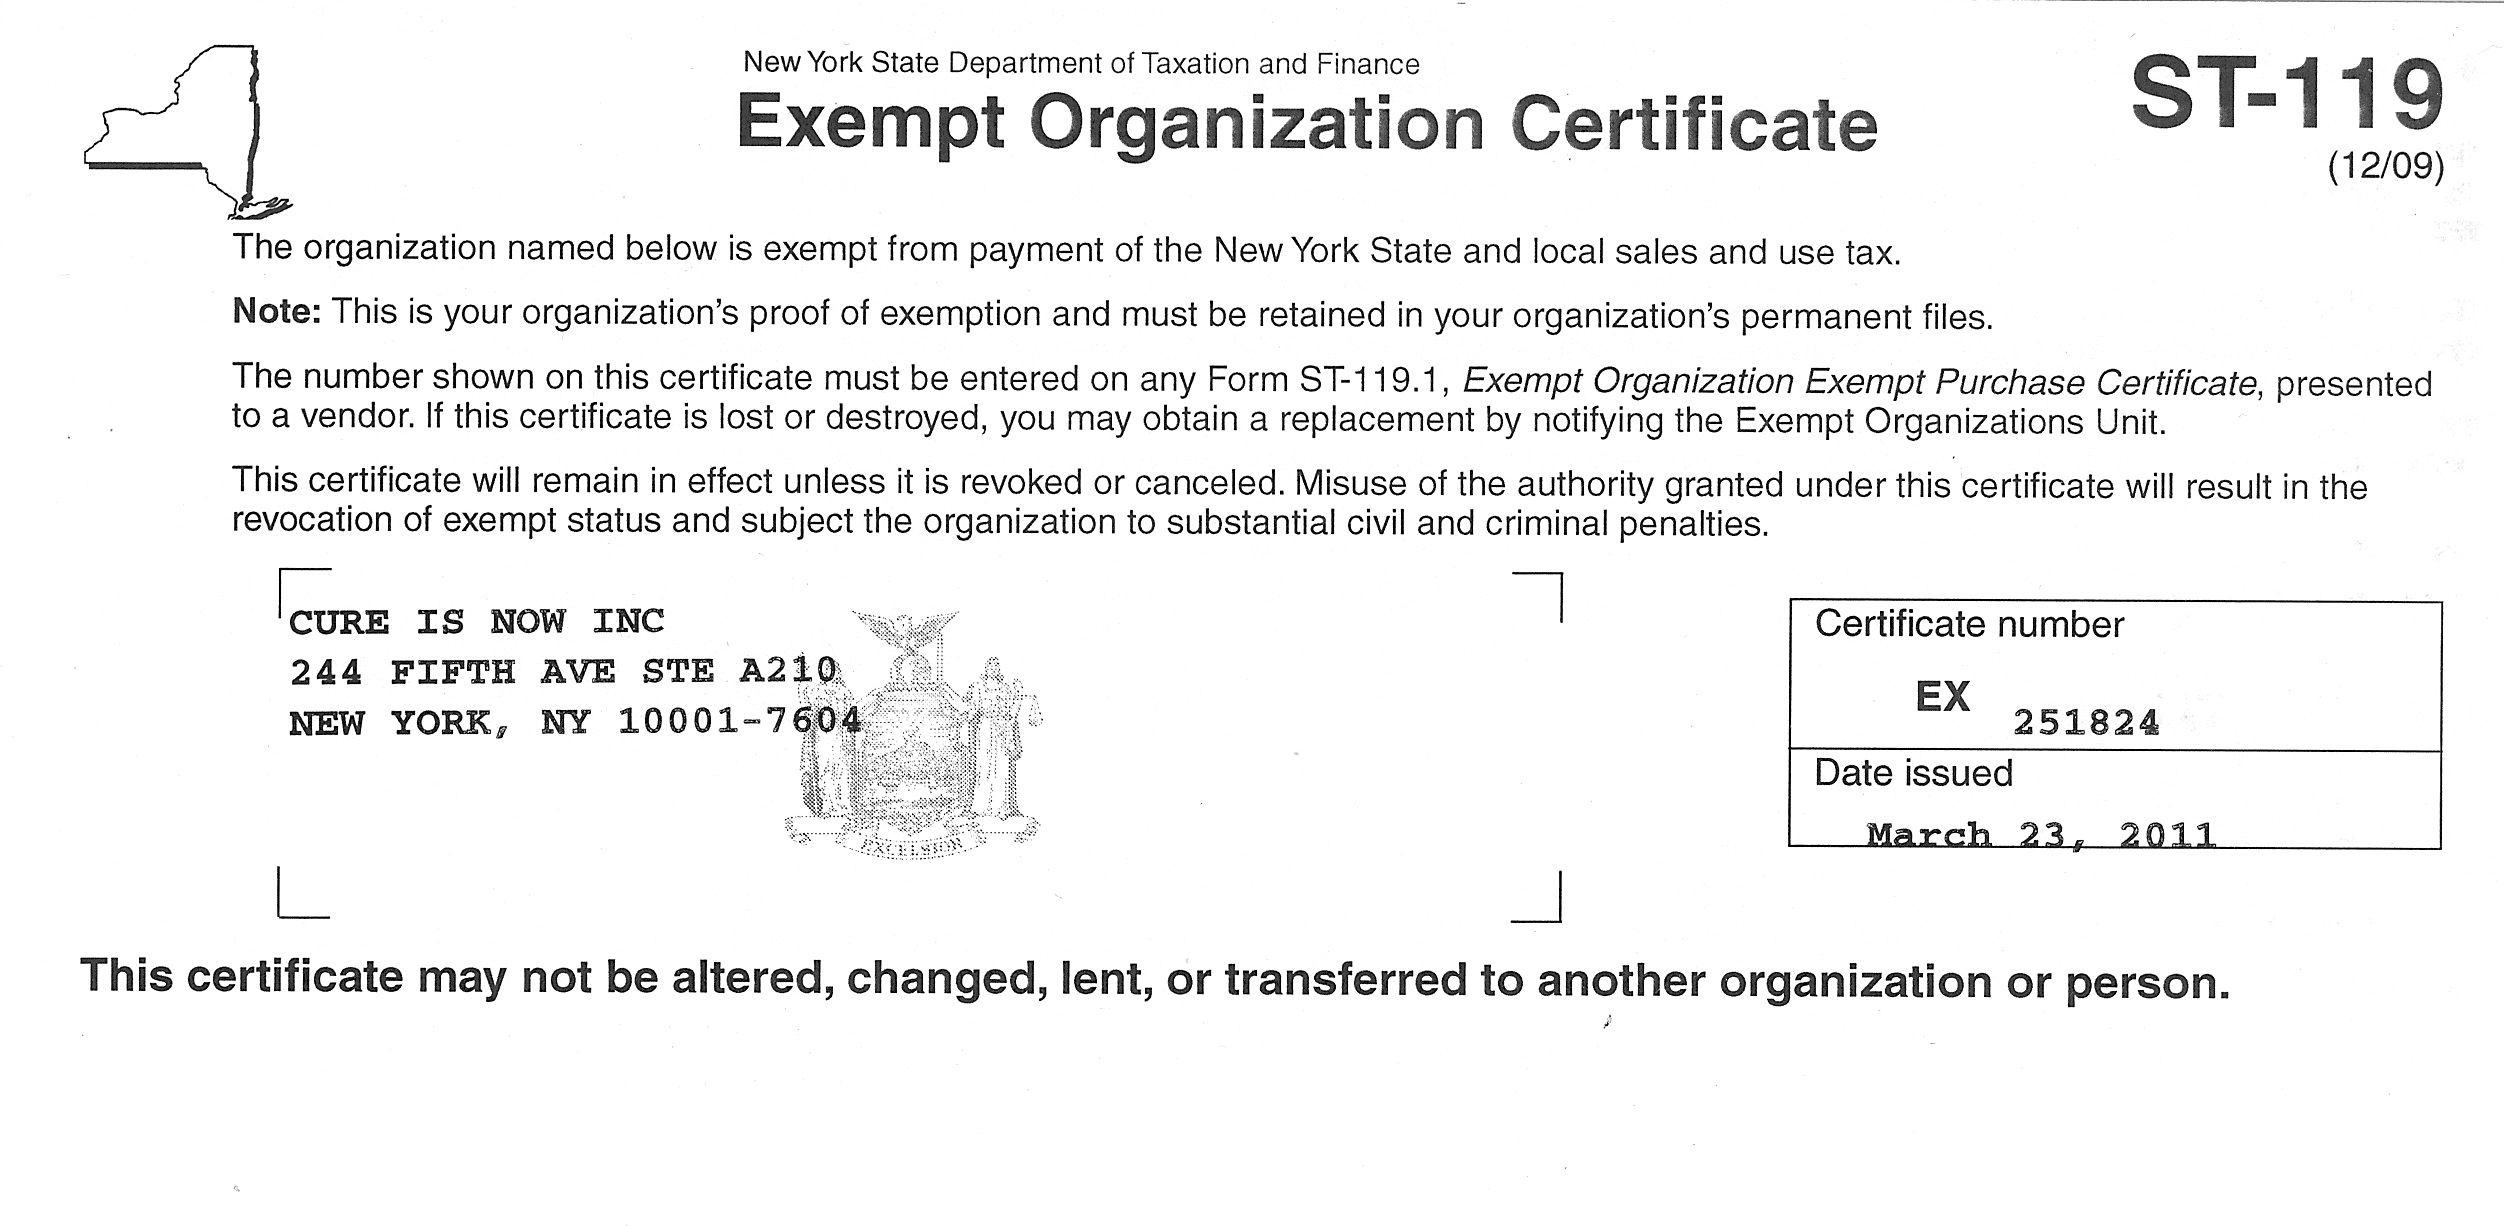 Tax exempt certificate the cure is now awareness campaigns xflitez Gallery